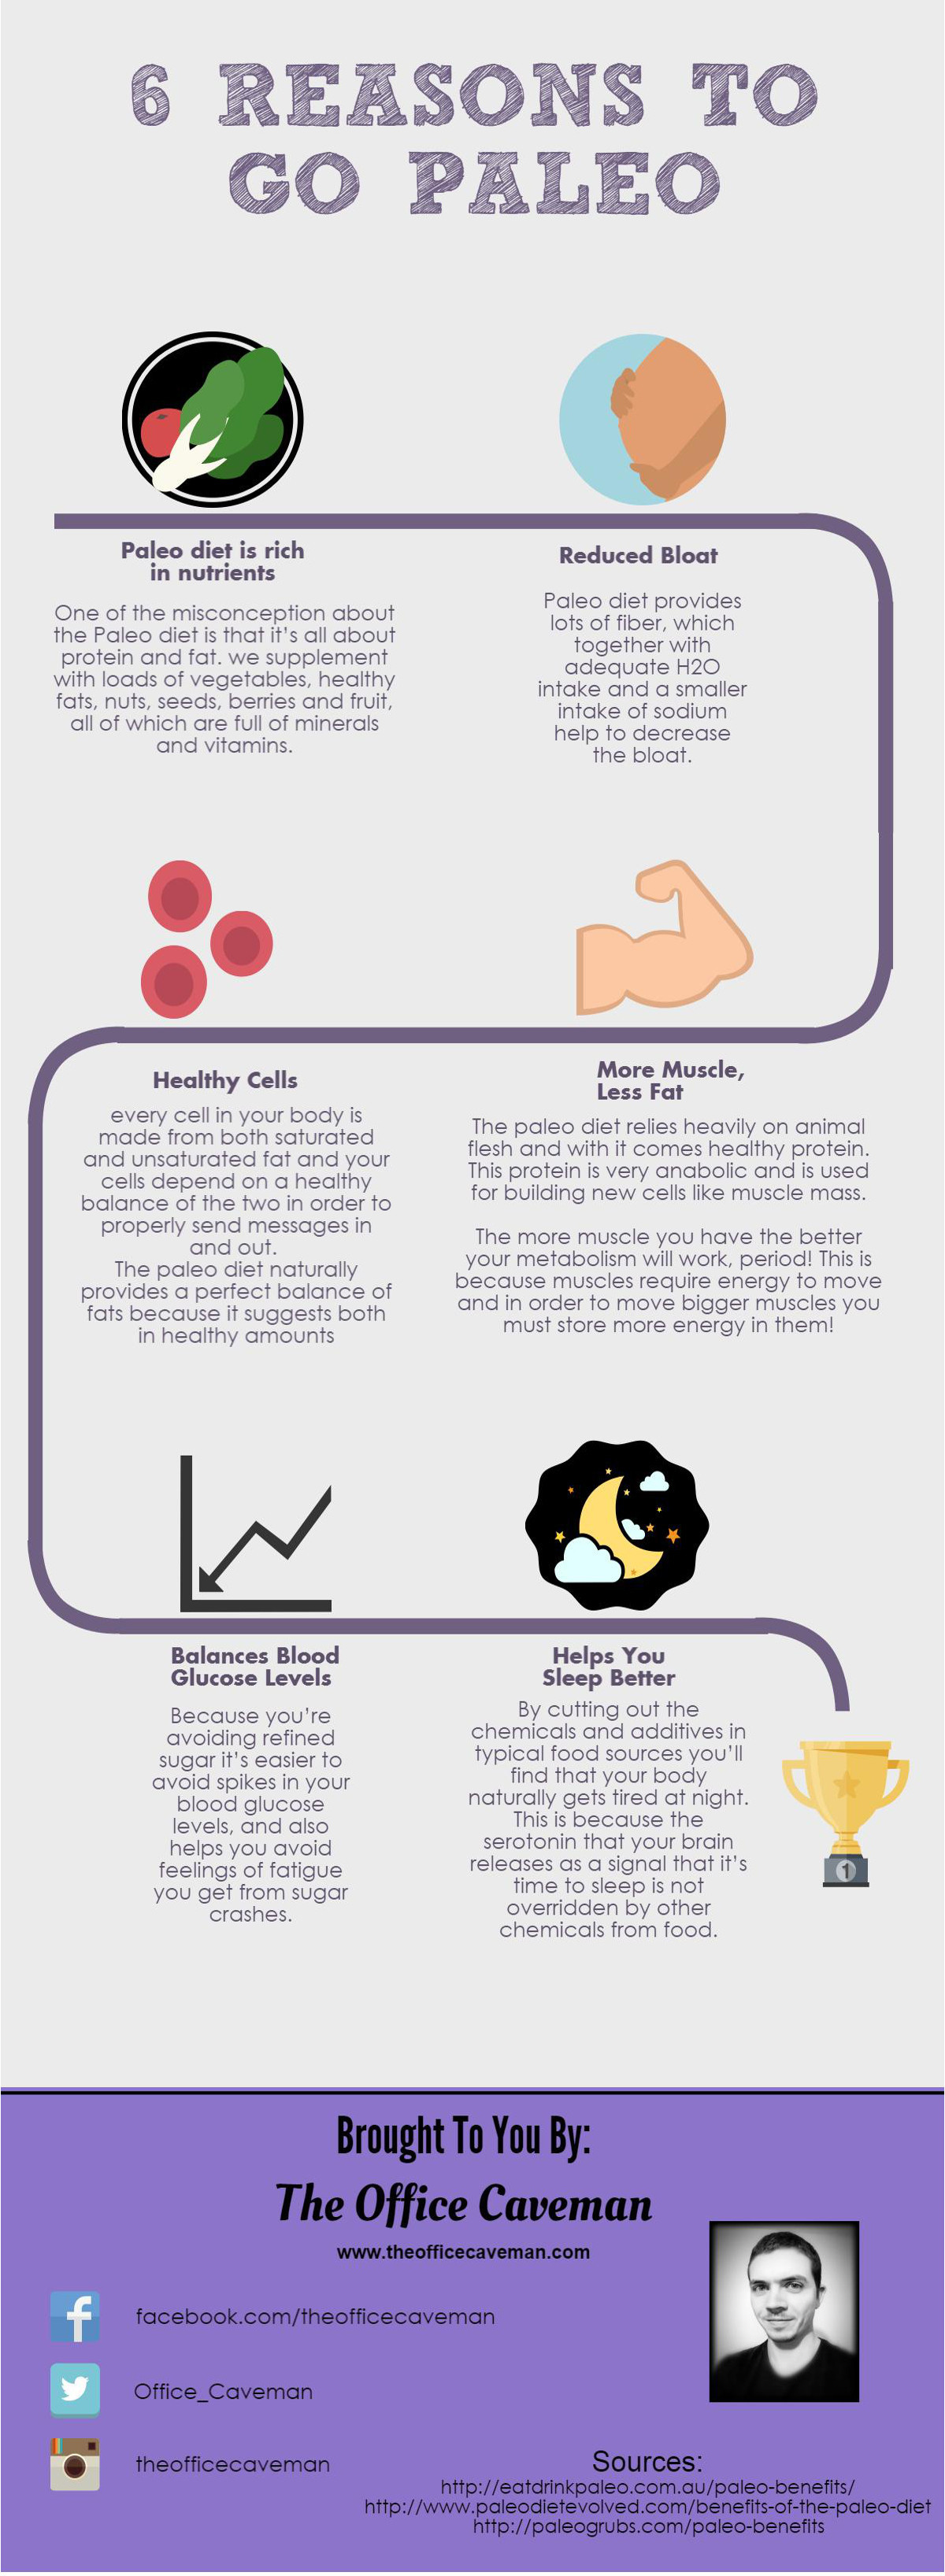 Paleo Diet Benefits  The Paleo Diet And Its Top Benefits Infographic